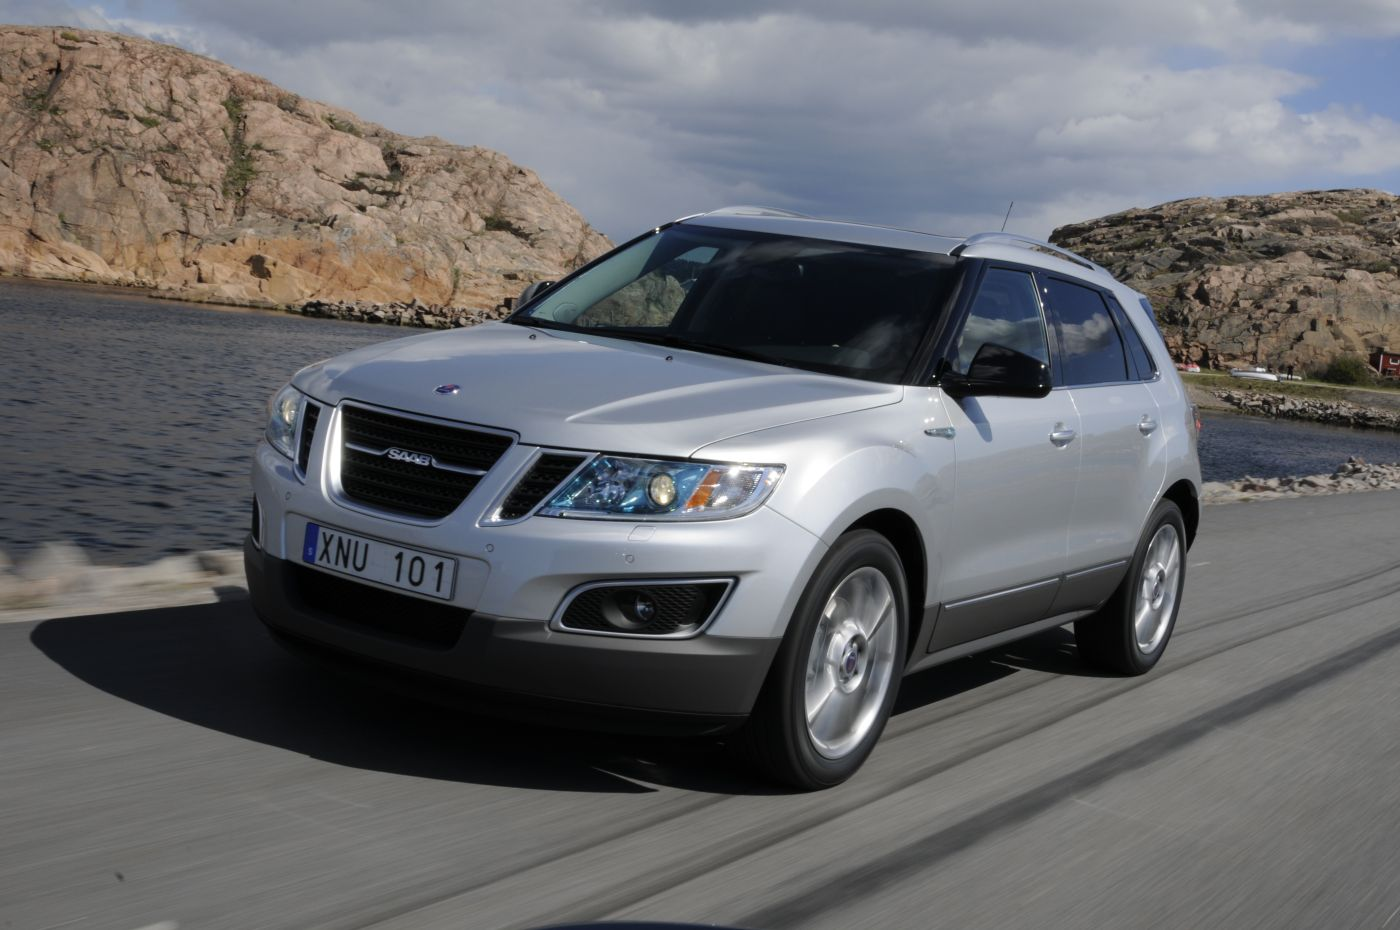 Saab 9-4X - world premiere